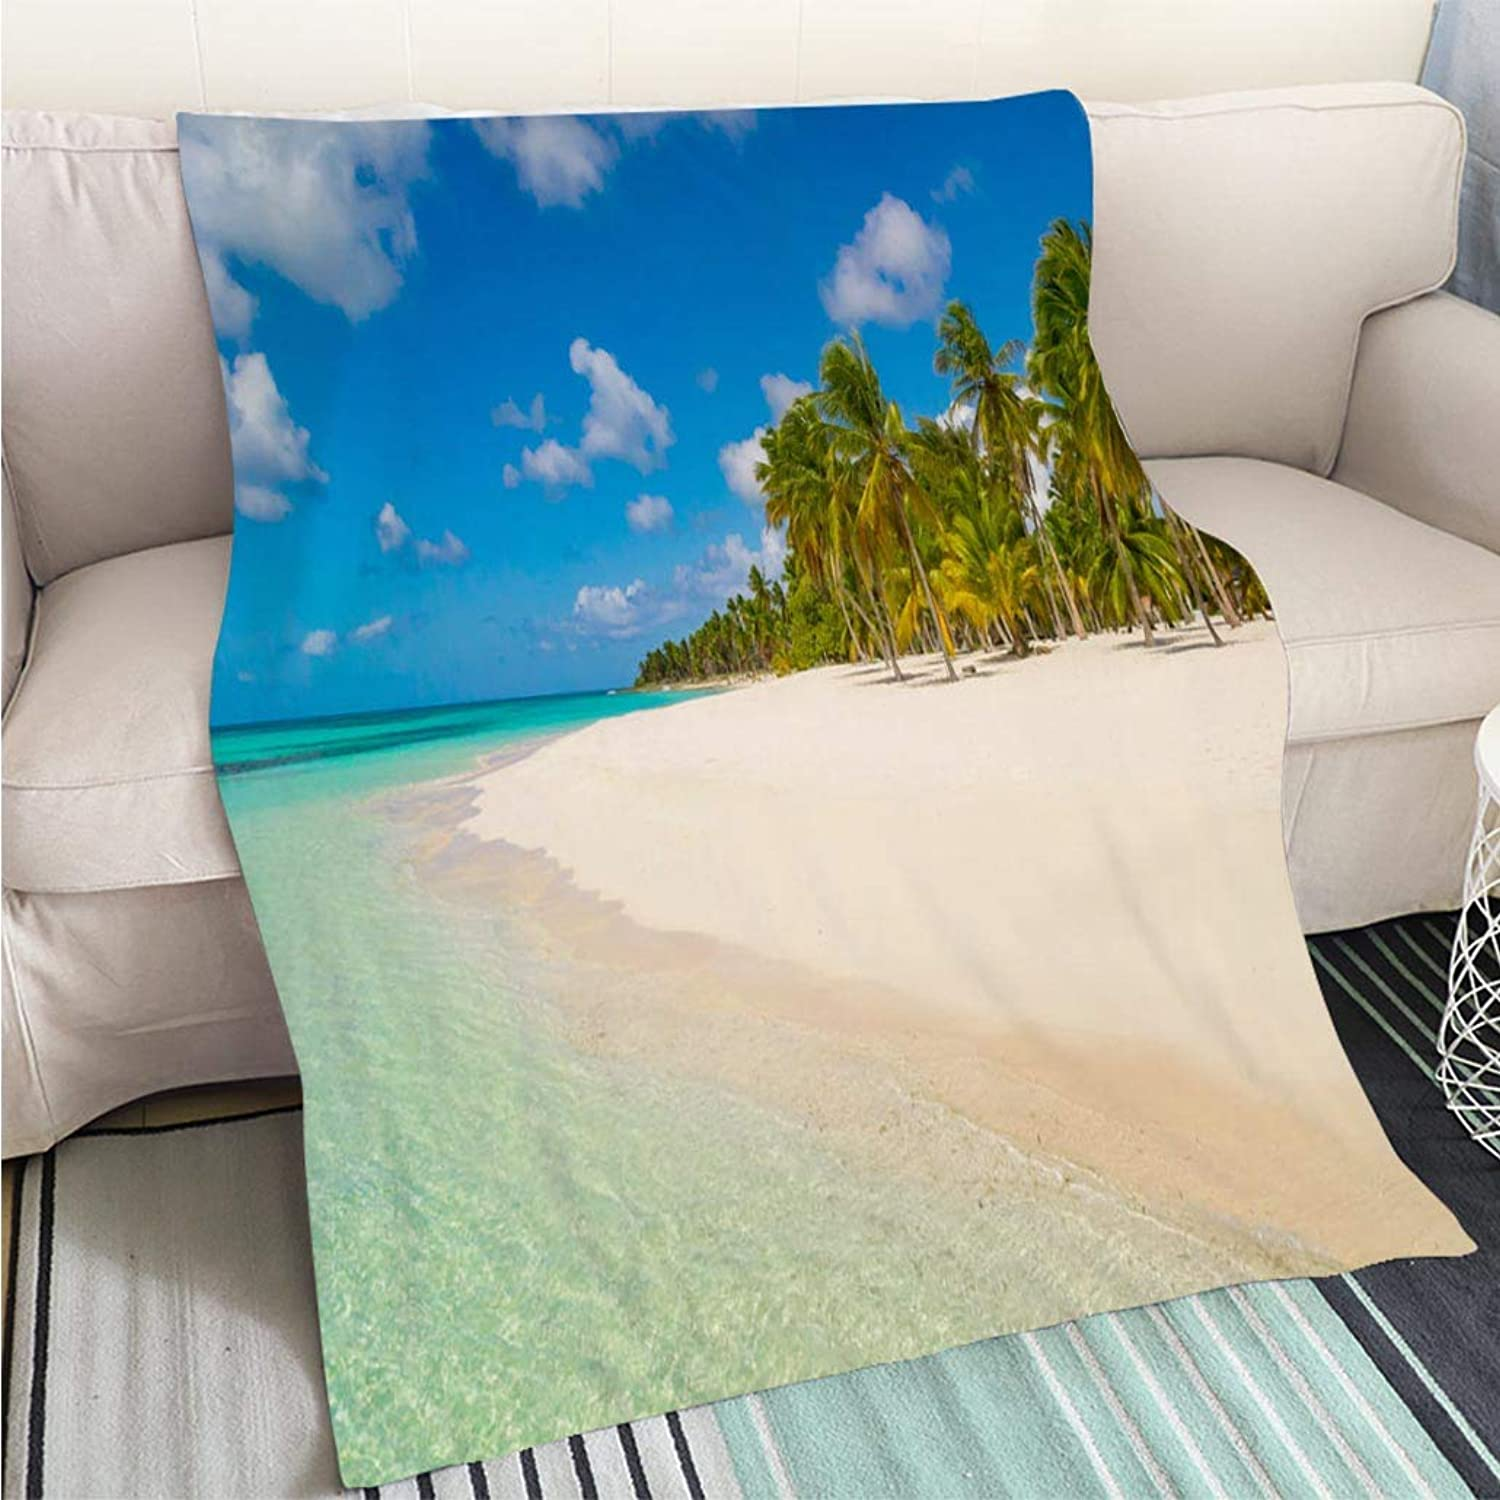 BEICICI Luxury Super Soft Blanket Dominican Republic Dream Beach Perfect for Couch Sofa or Bed Cool Quilt